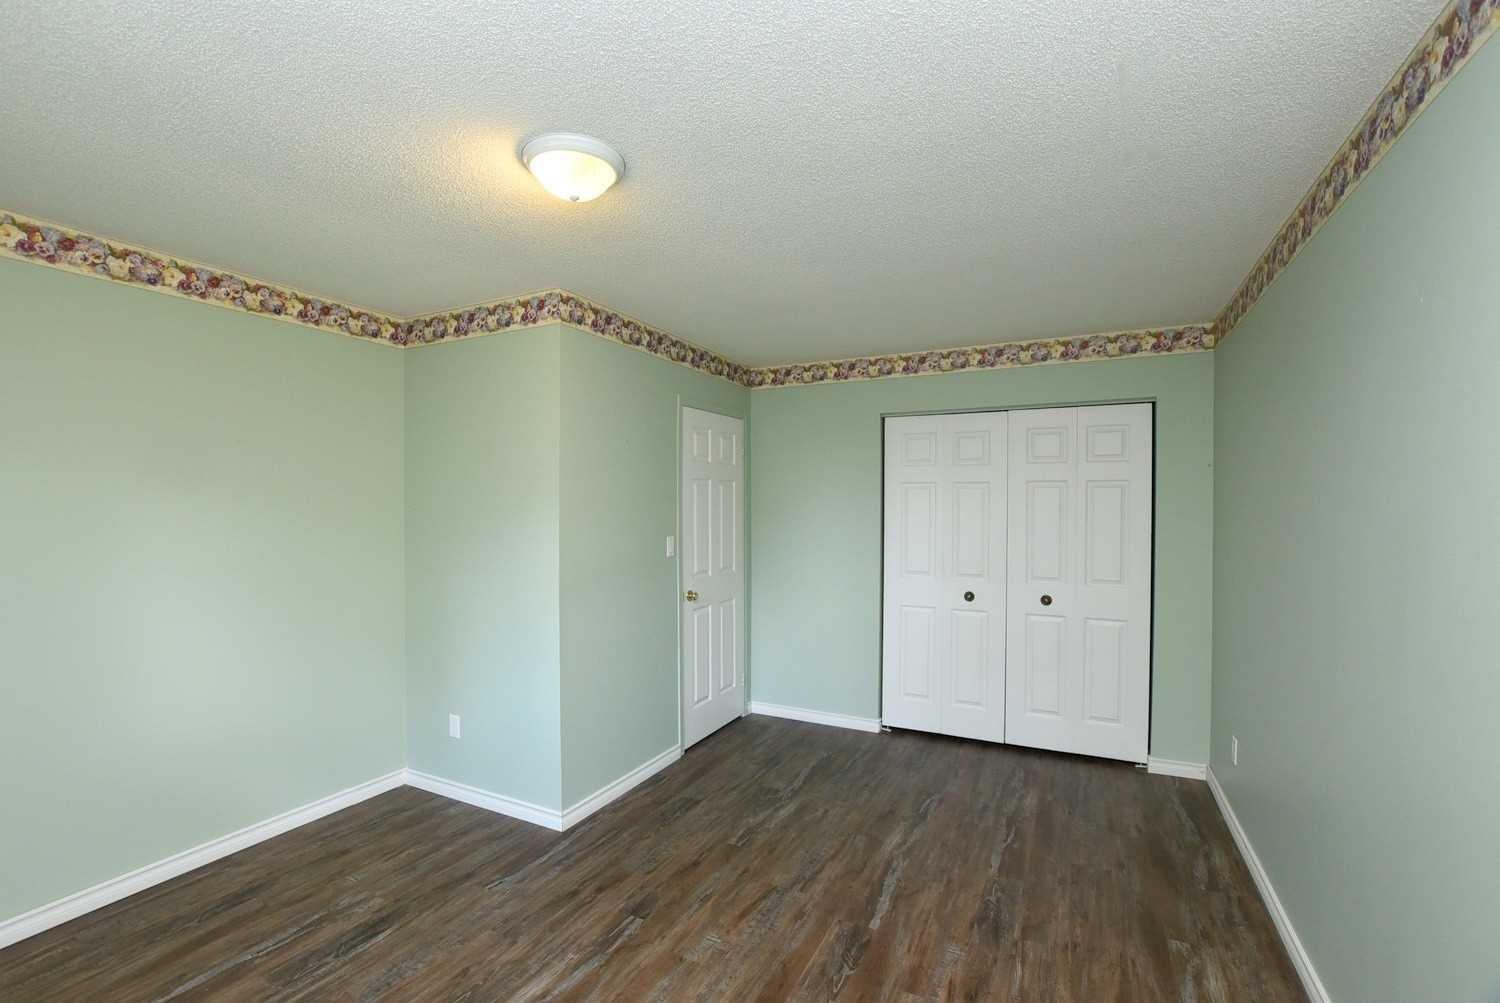 Condo Townhouse For Sale In Haldimand , 2 Bedrooms Bedrooms, ,2 BathroomsBathrooms,Condo Townhouse,For Sale,15,Kinross